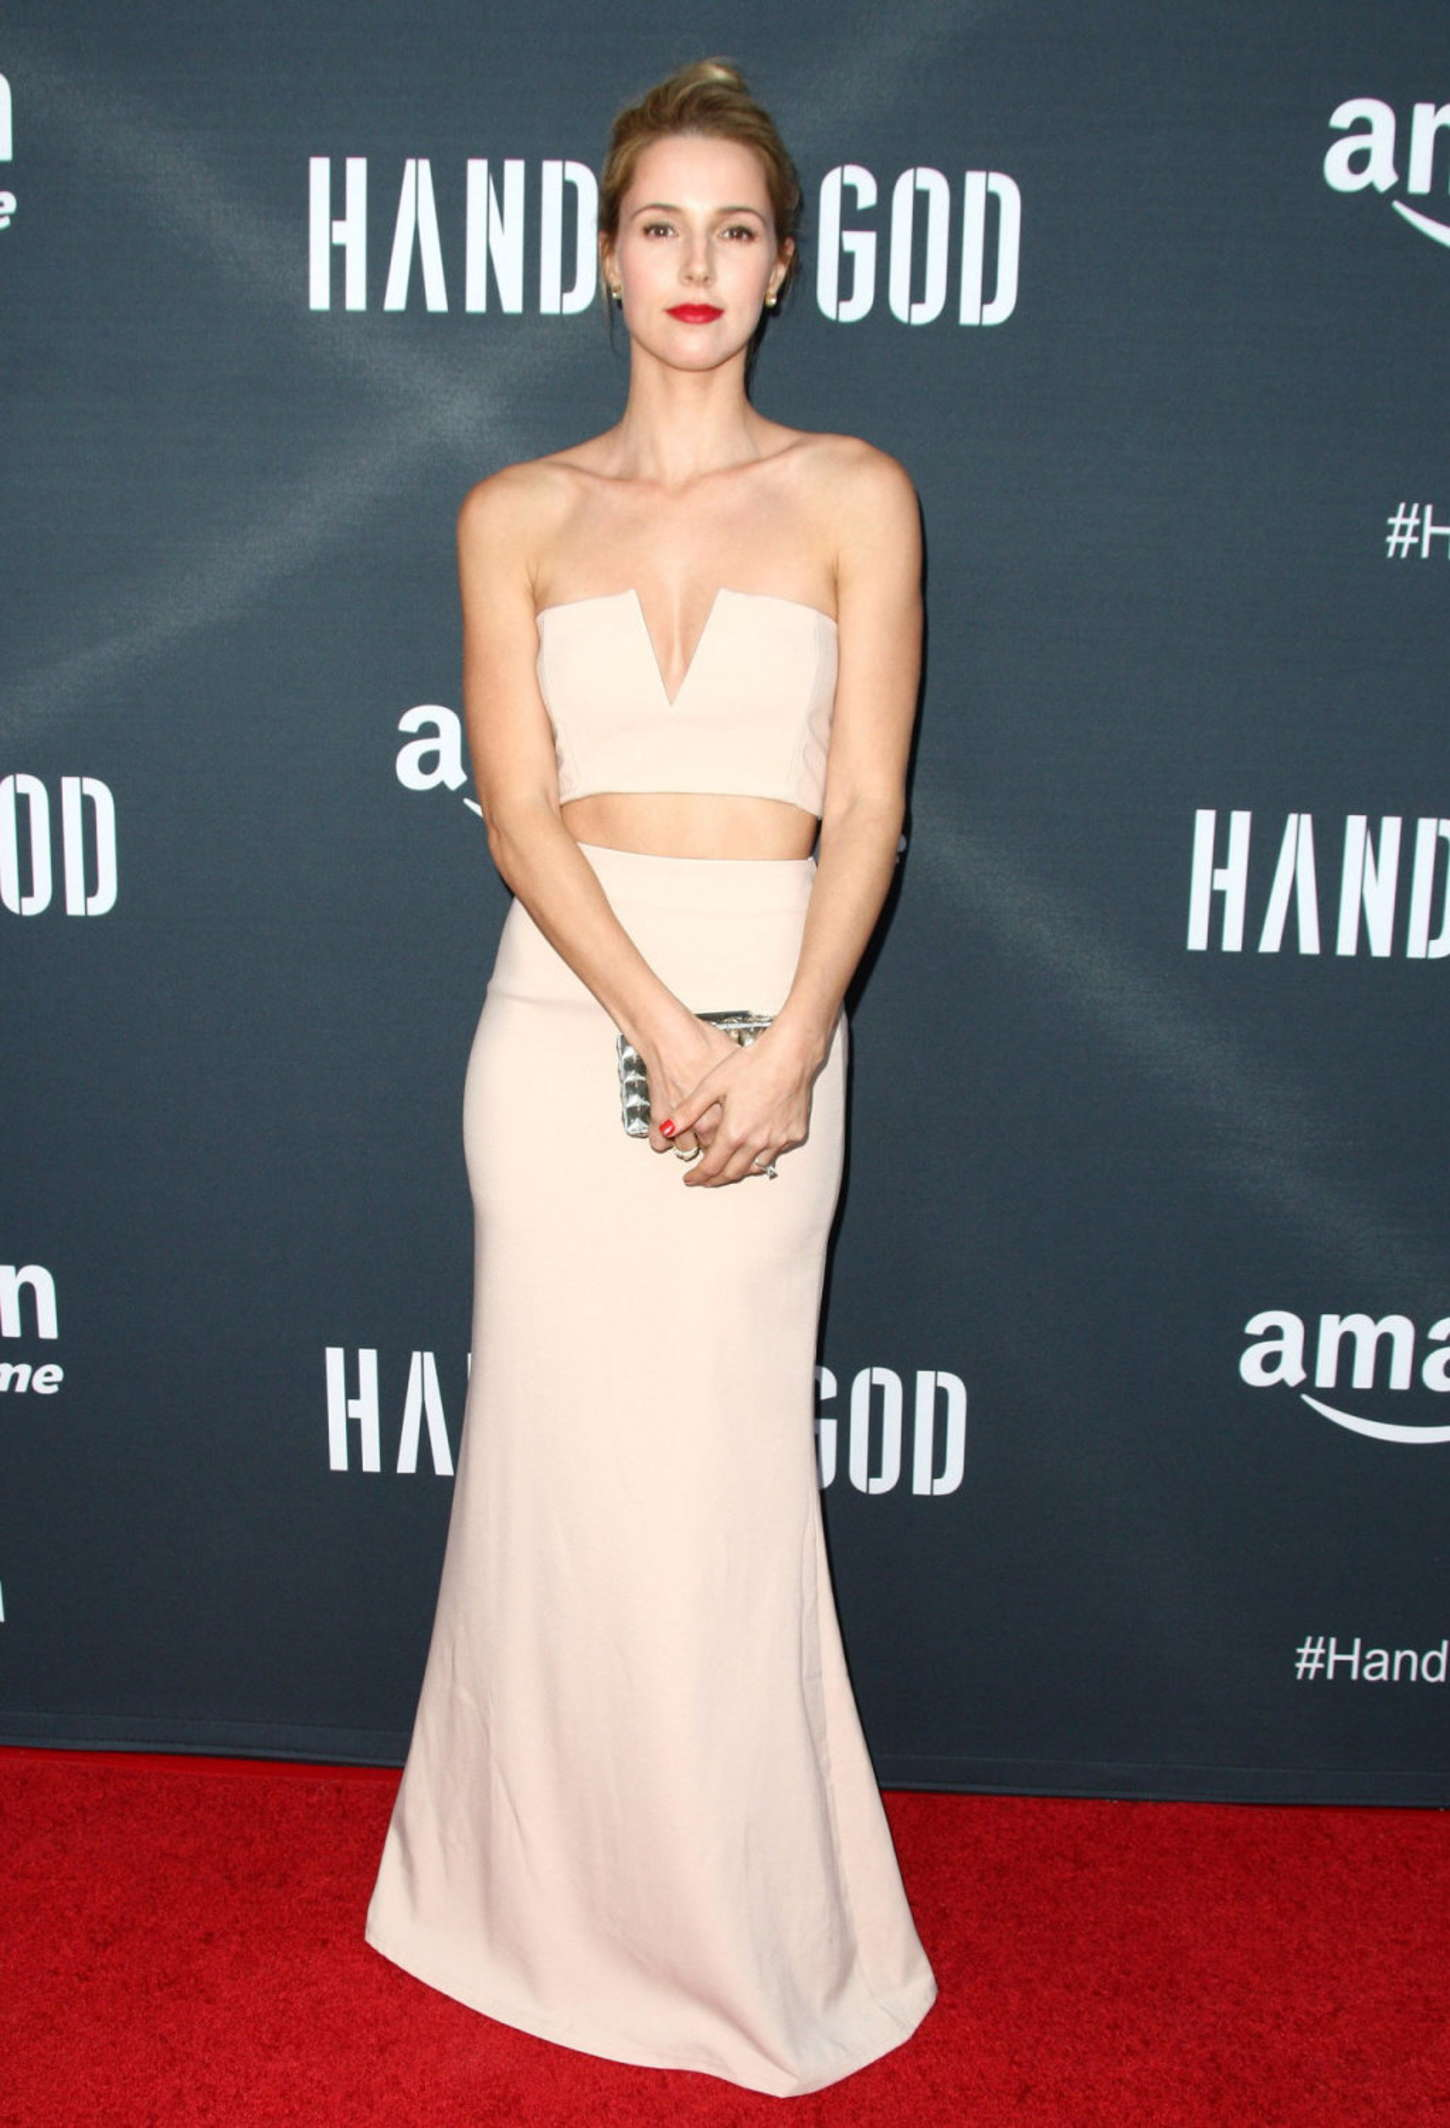 Alona Tal Hand of God Screening in Los Angeles